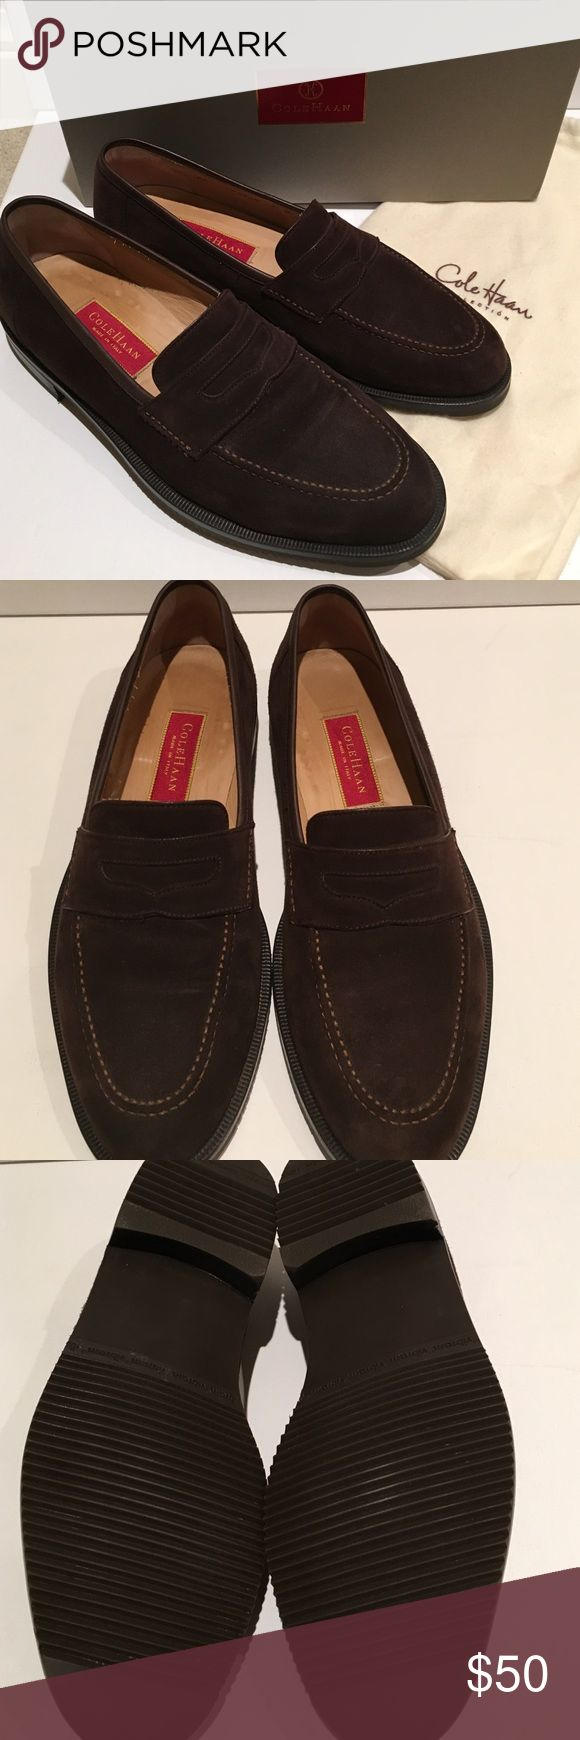 Men's Cole Haan suede footwear Rich chocolate brown suede loafer with ridged rubber sole.  Light wear--there is a spot on toe of left shoe as shown in photo 4.  Actually shows up more in photo than it really does.  Comes with box (I do not believe it is correct box) and shoe bags. Cole Haan Shoes Loafers & Slip-Ons